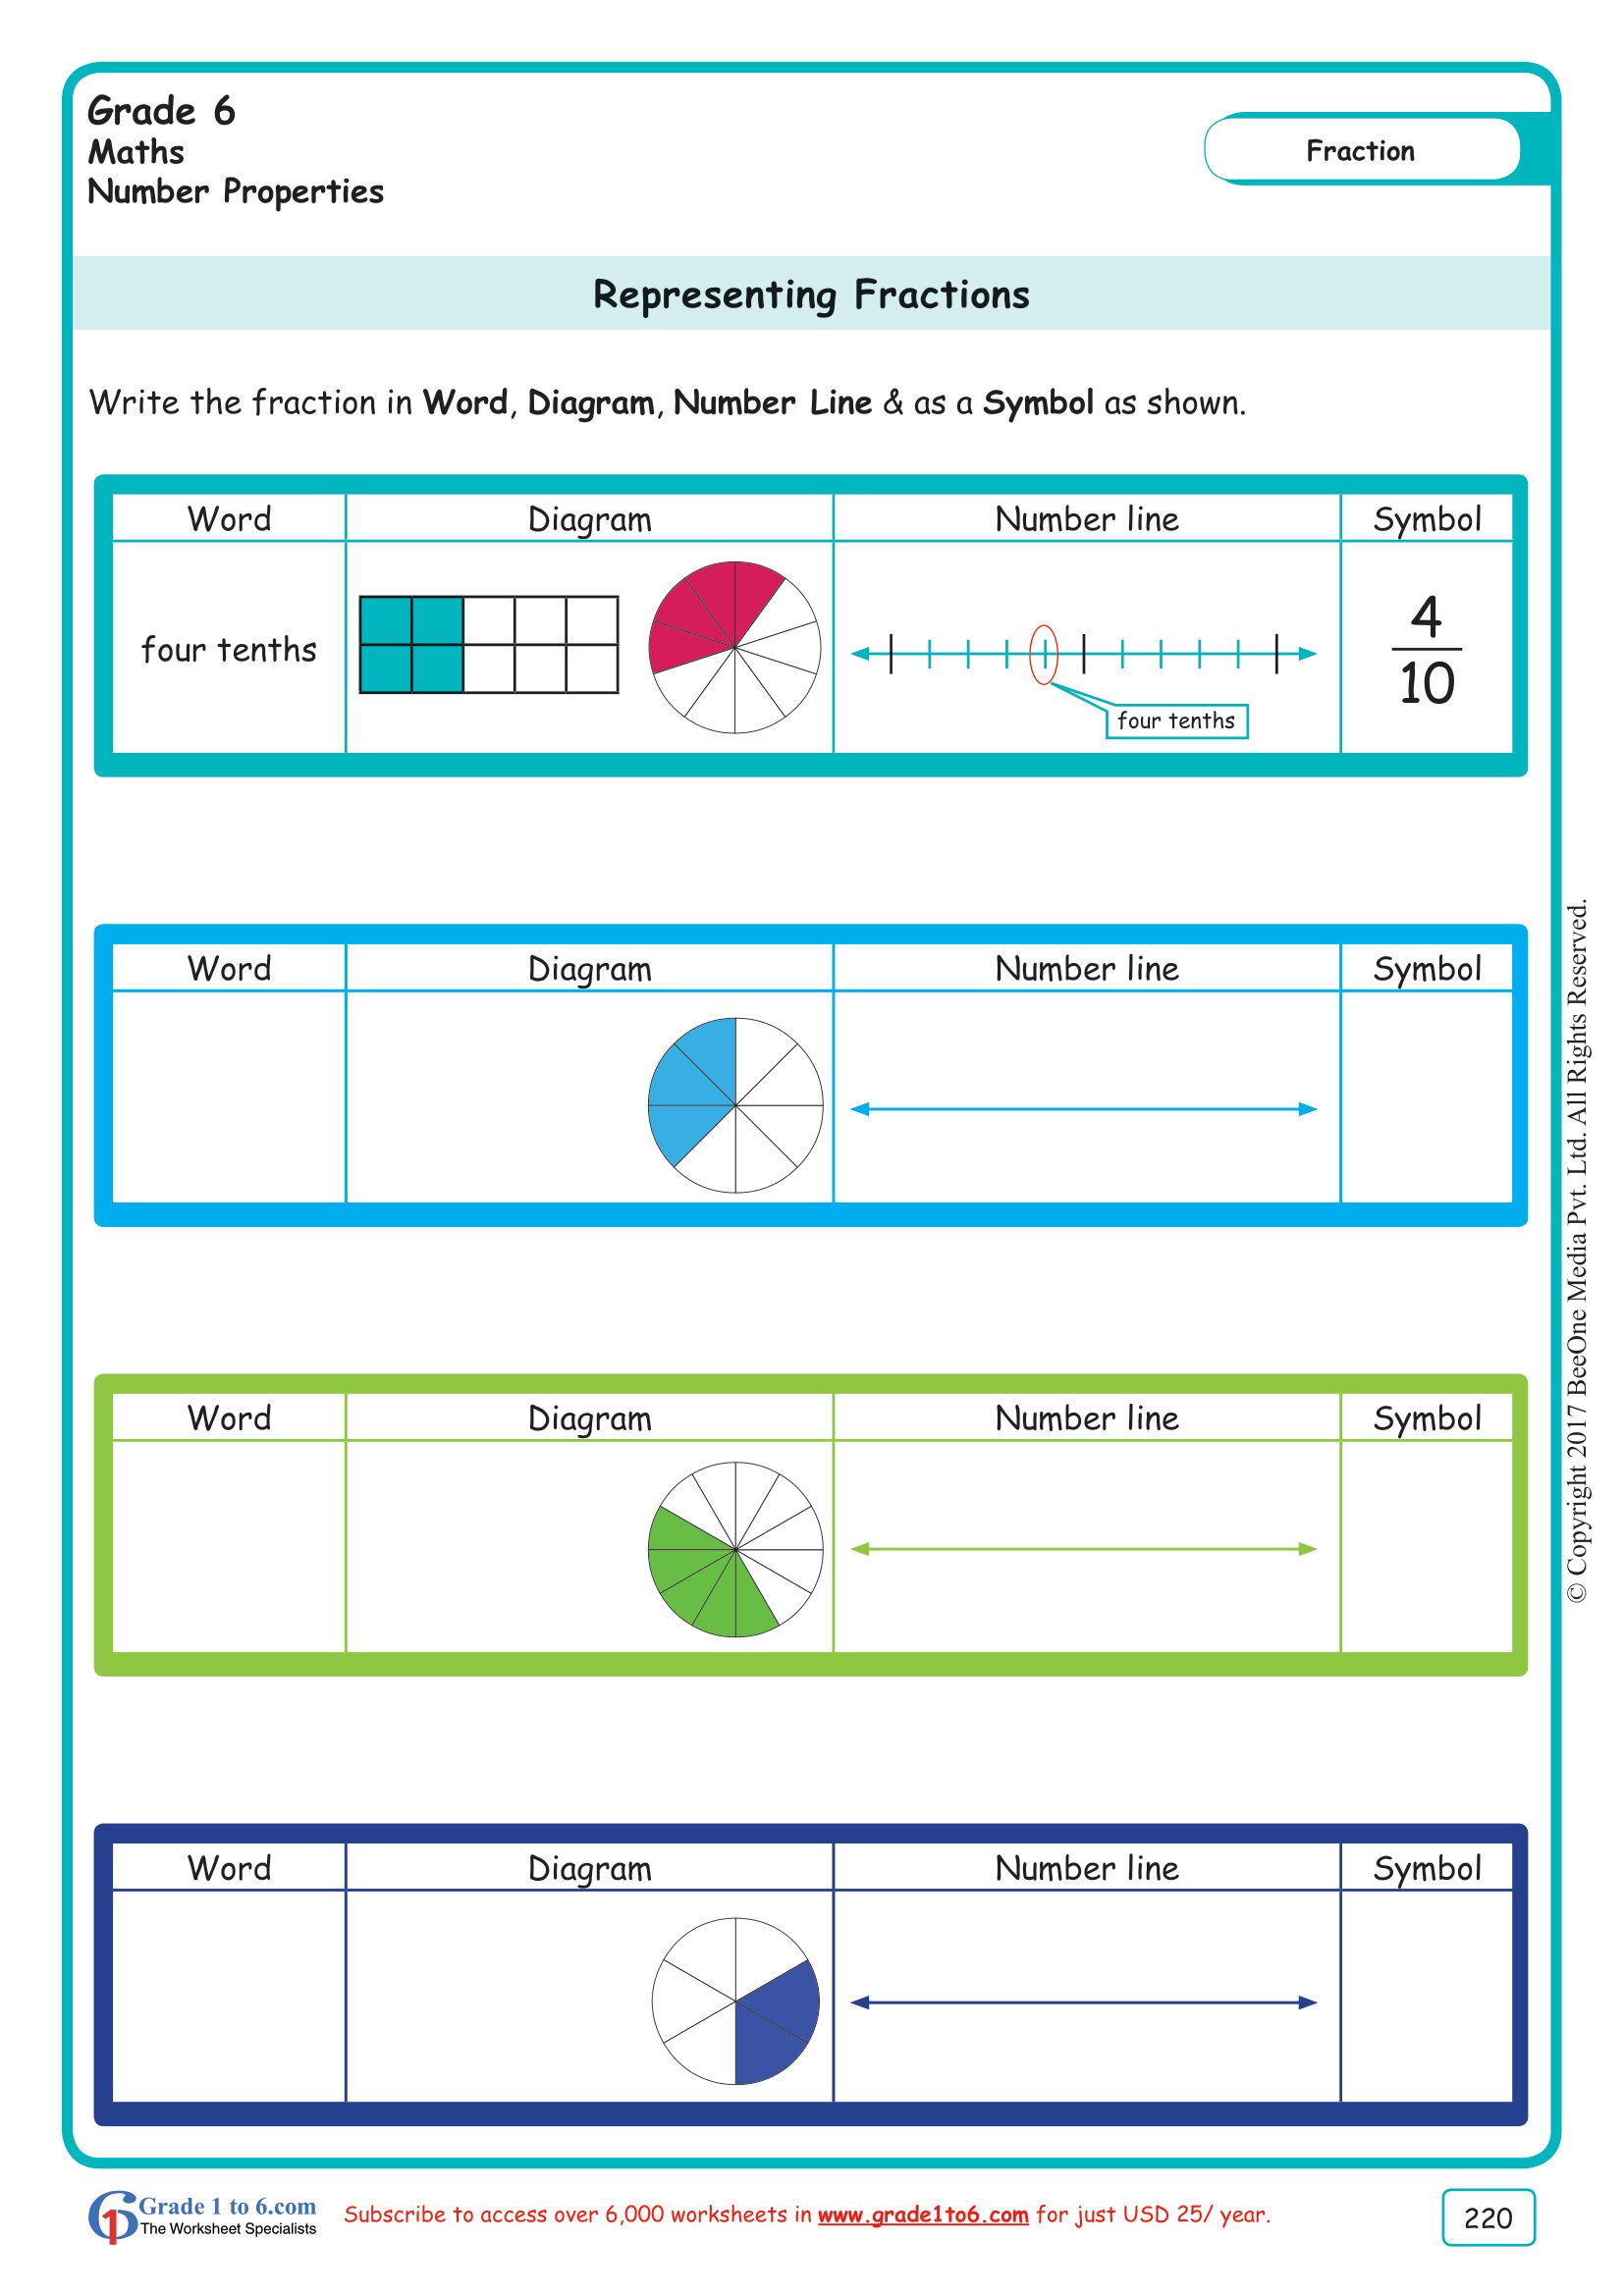 hight resolution of Grade 6 Representing Fractions Worksheets www.grade1to6.com